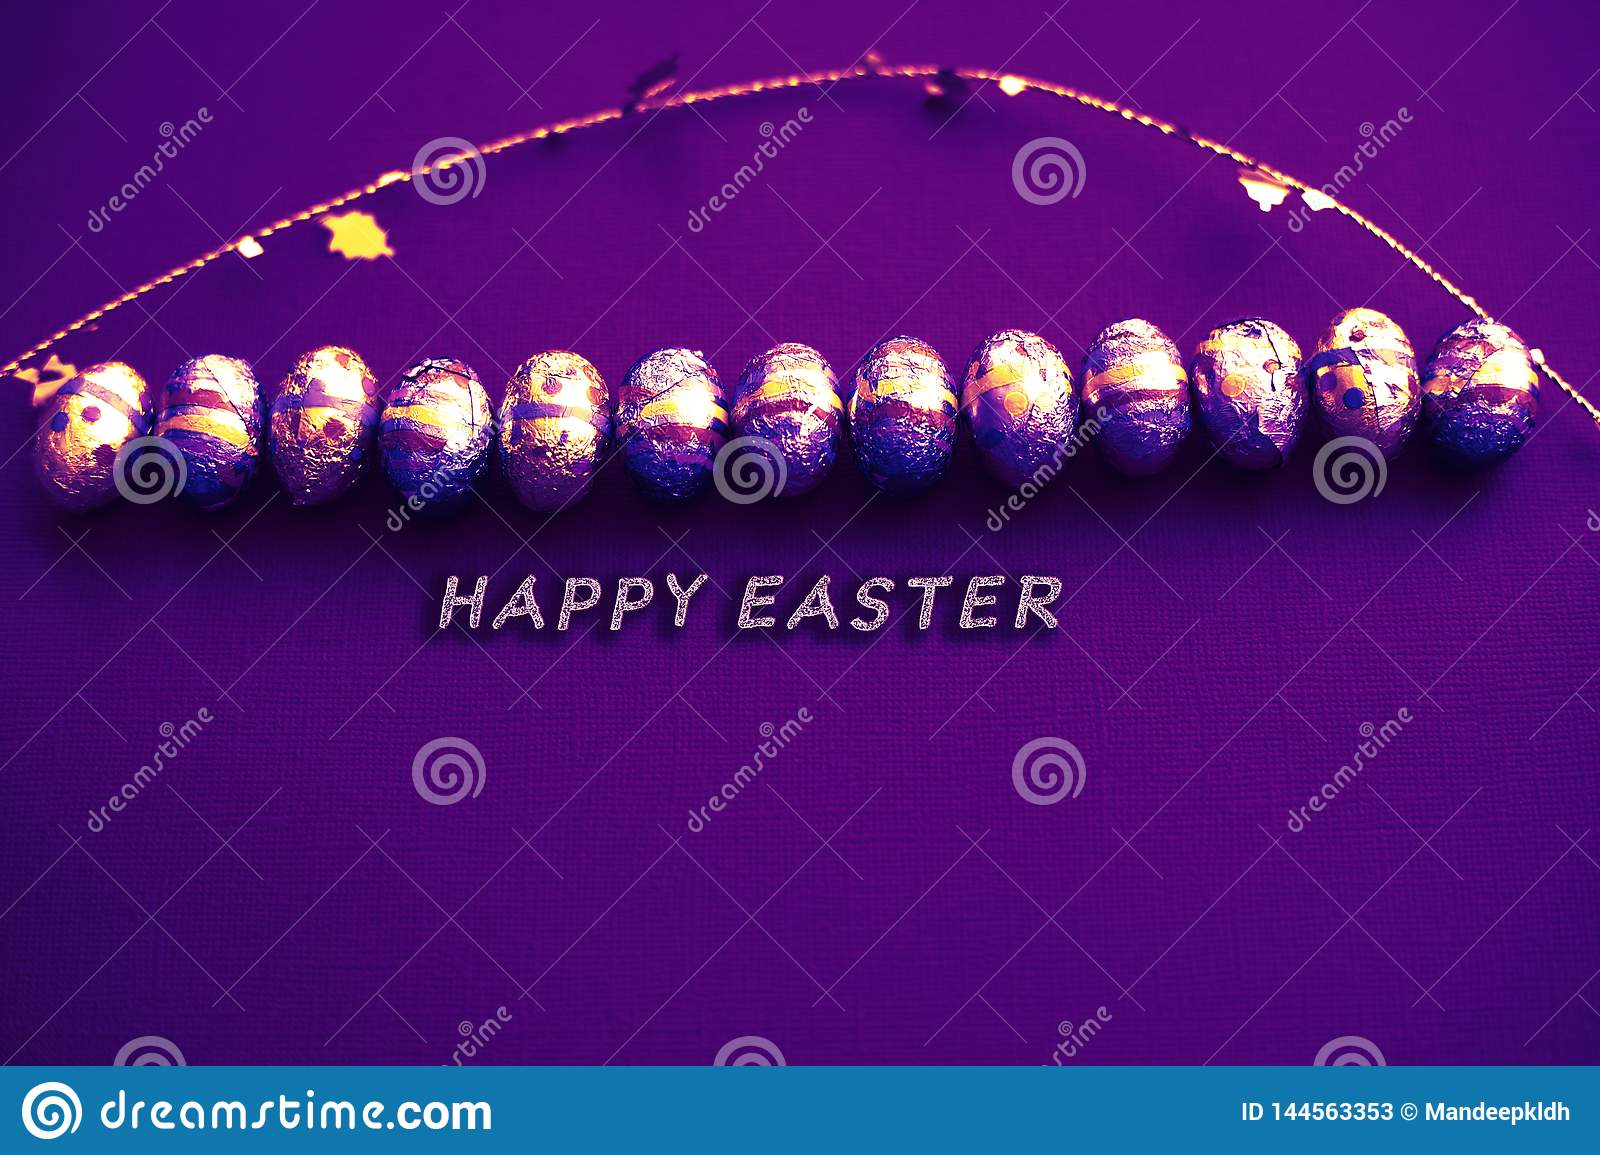 Easter greeting card. Easter eggs card with golden confetti on surface. Festive stylish wallpaper. Pastel sheets luxurious theme.